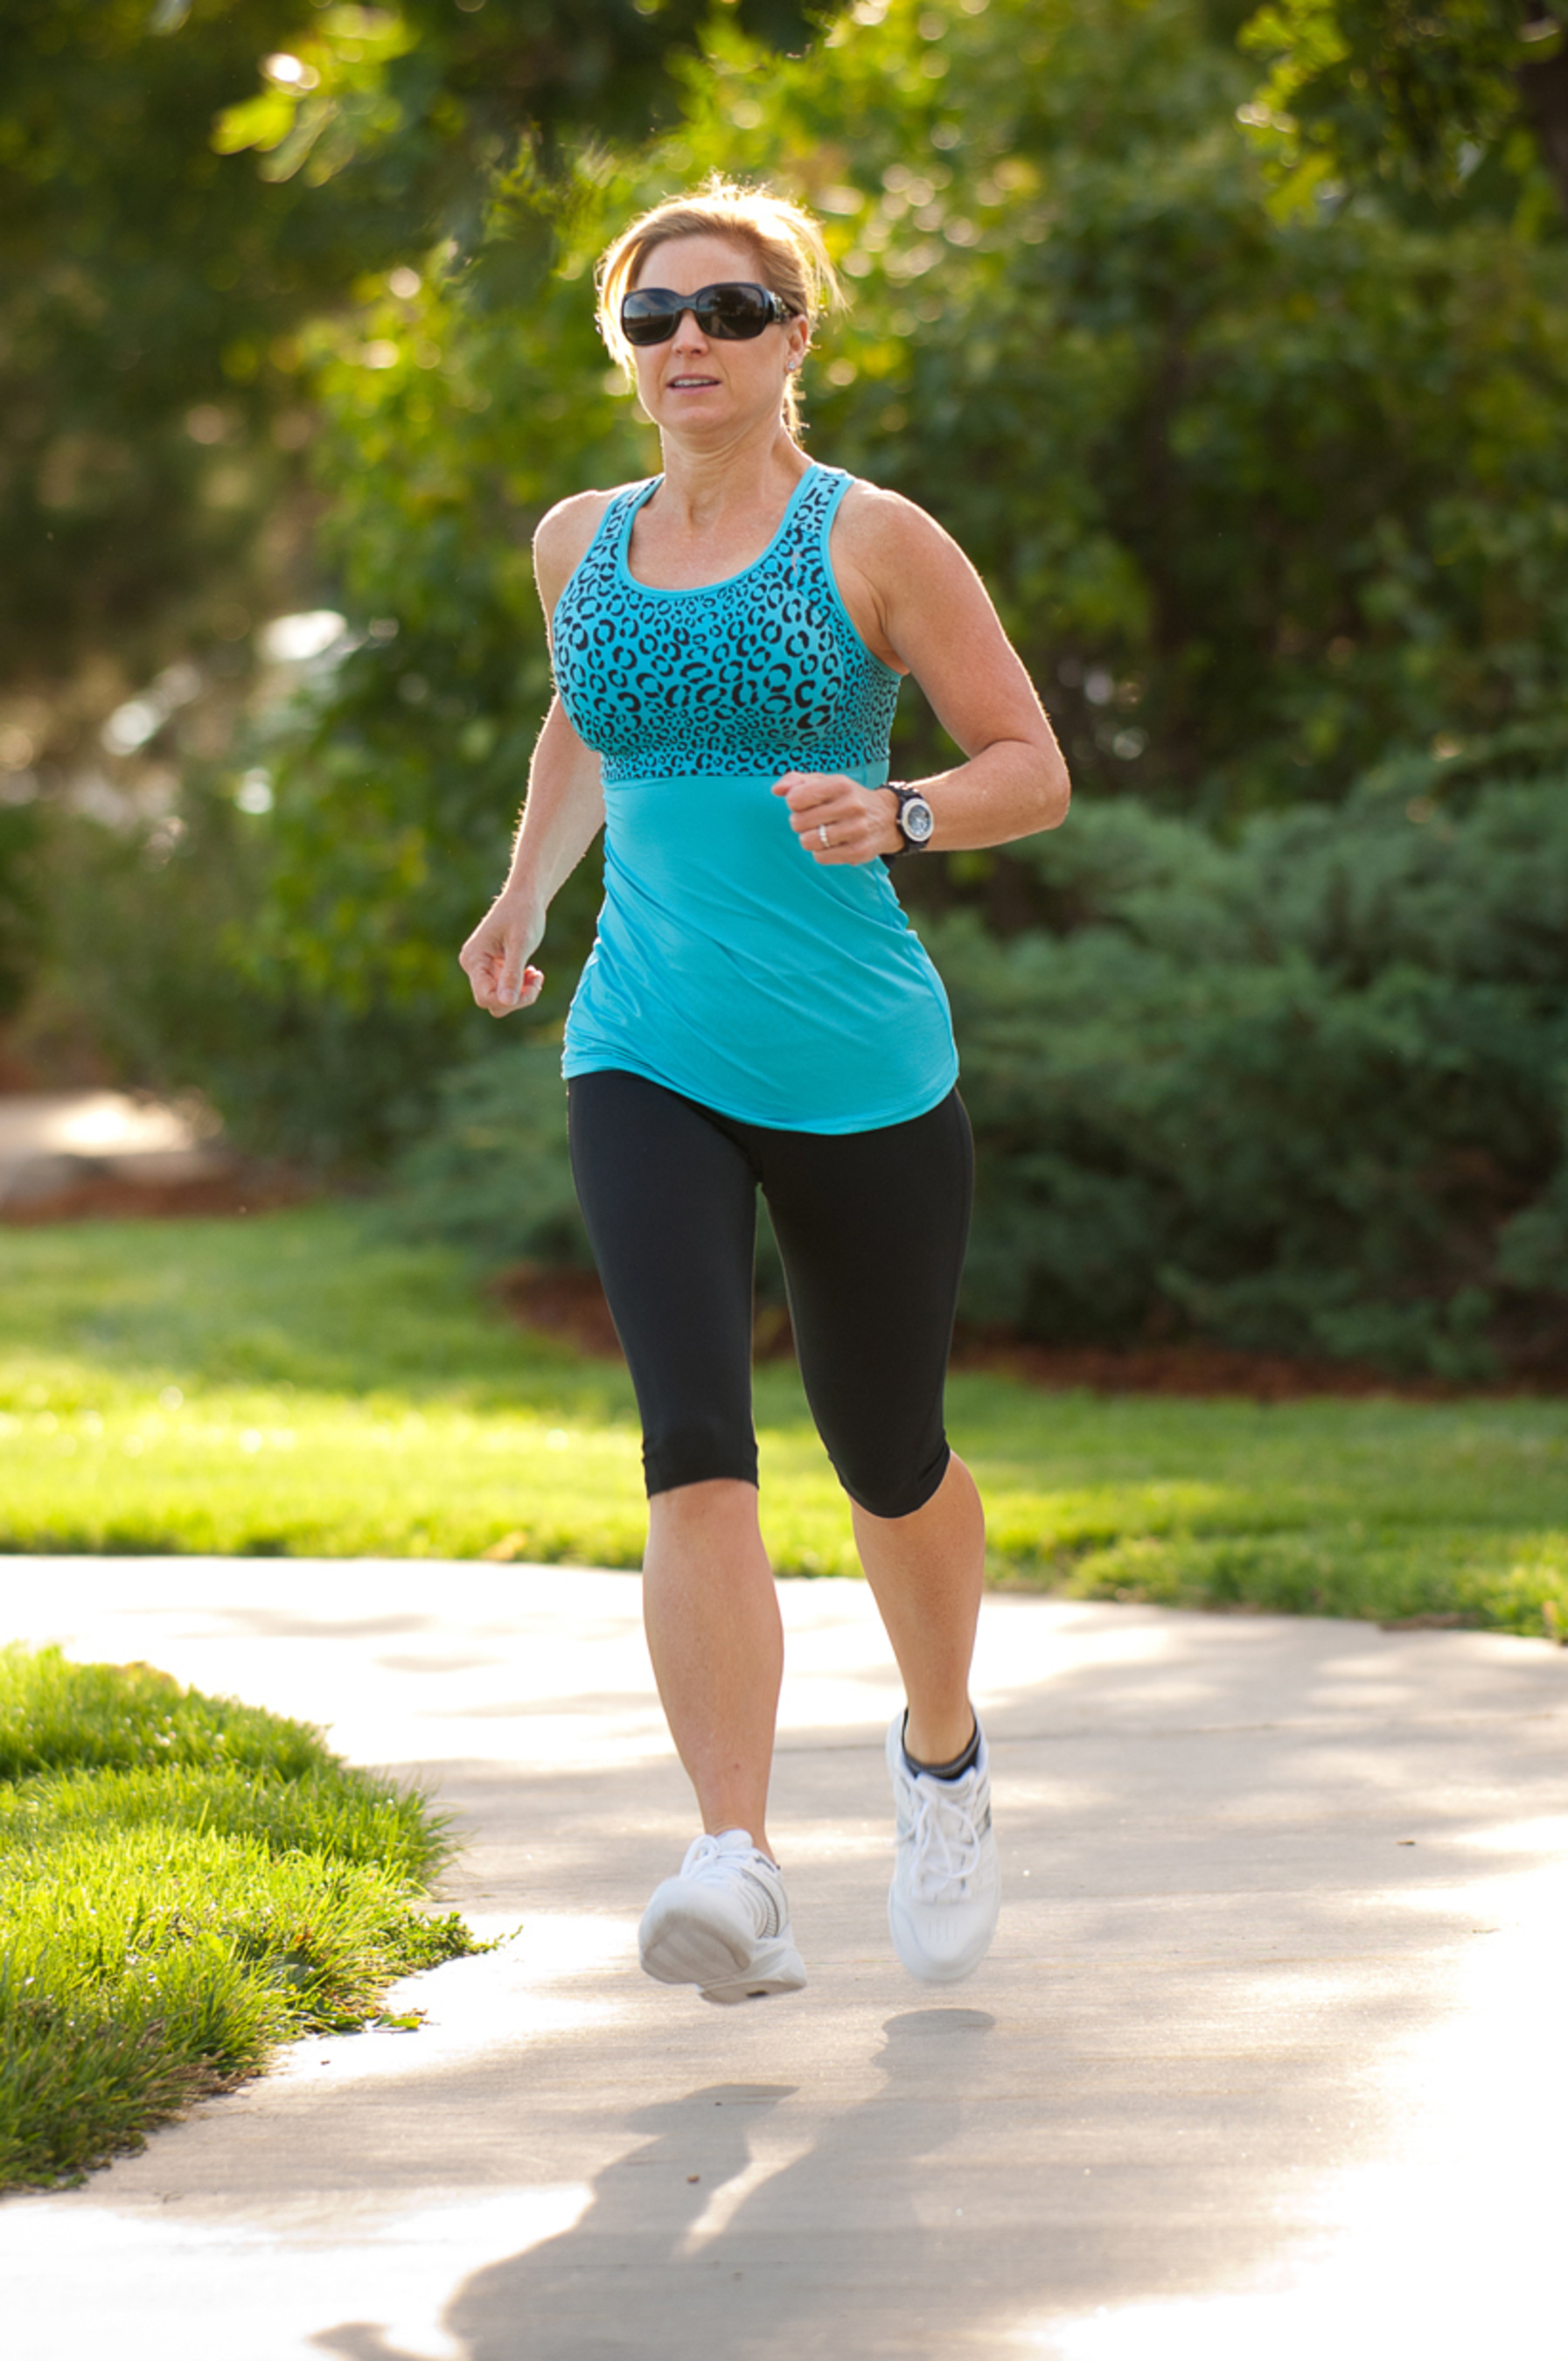 Running is easier for large-breasted female athletes who wear Sturdy Girl sports bras (PRNewsFoto/Sturdy Girl Sports)